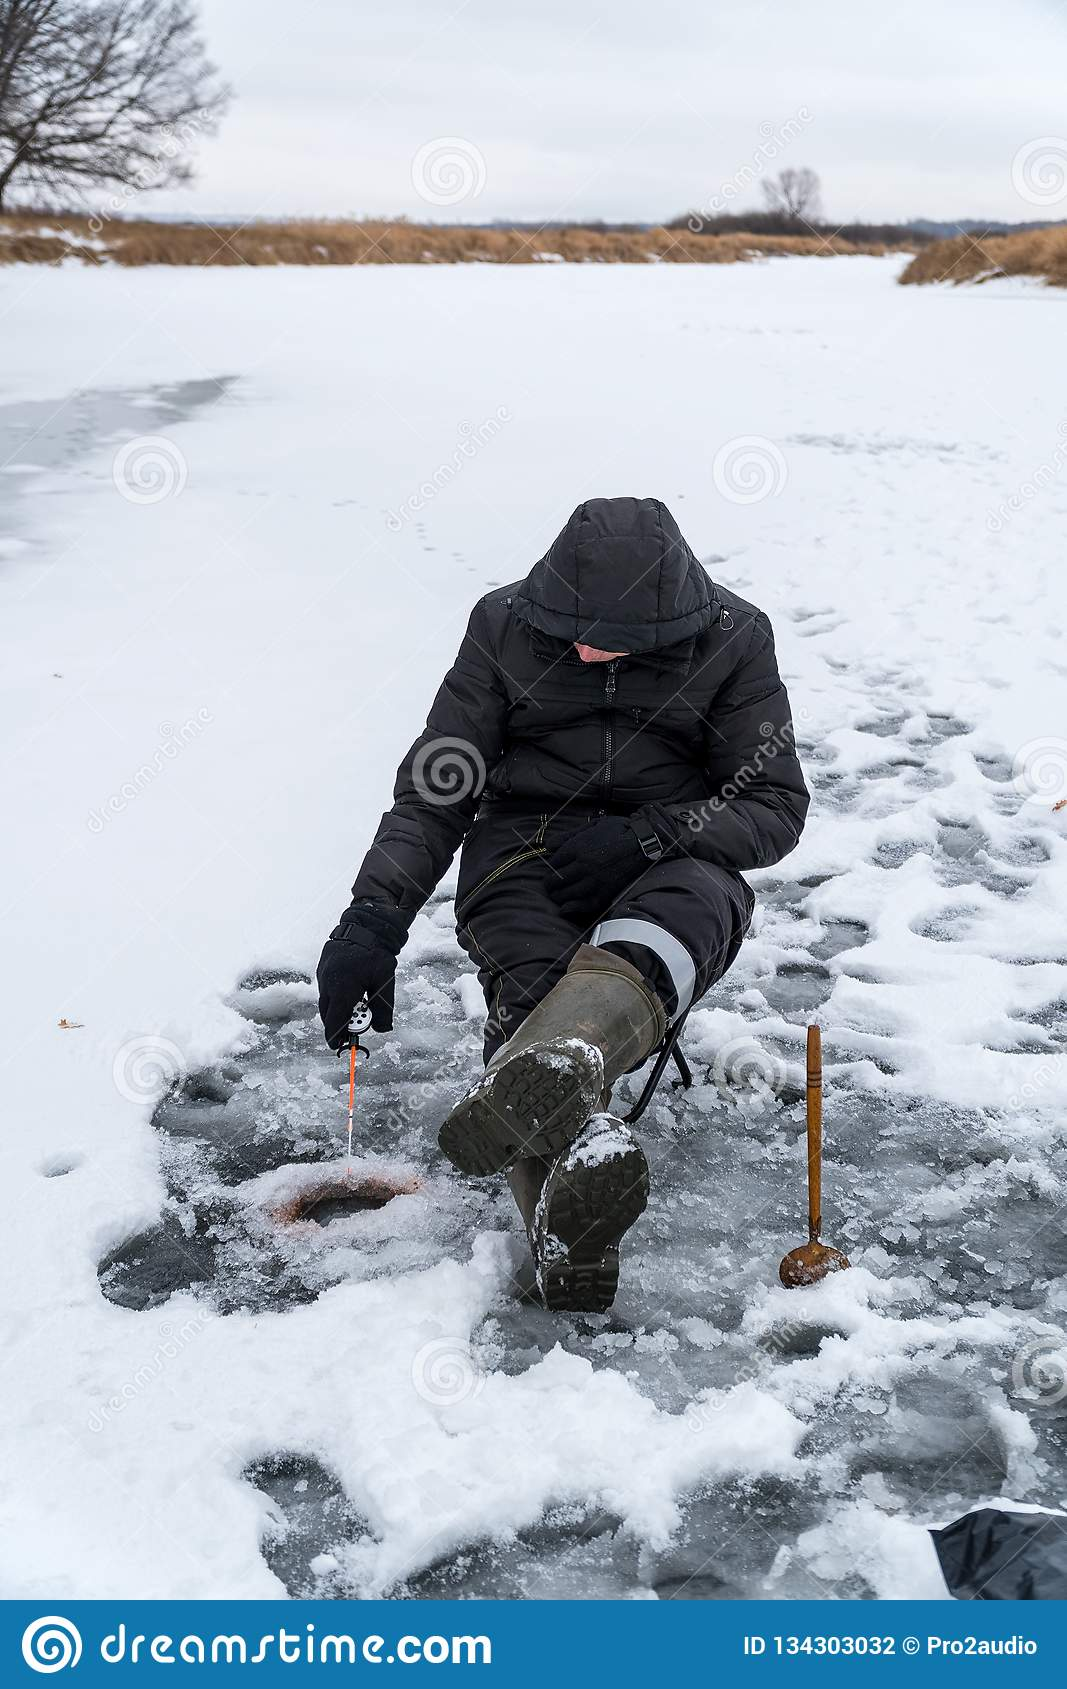 Fisherman catches a fish on winter fishing